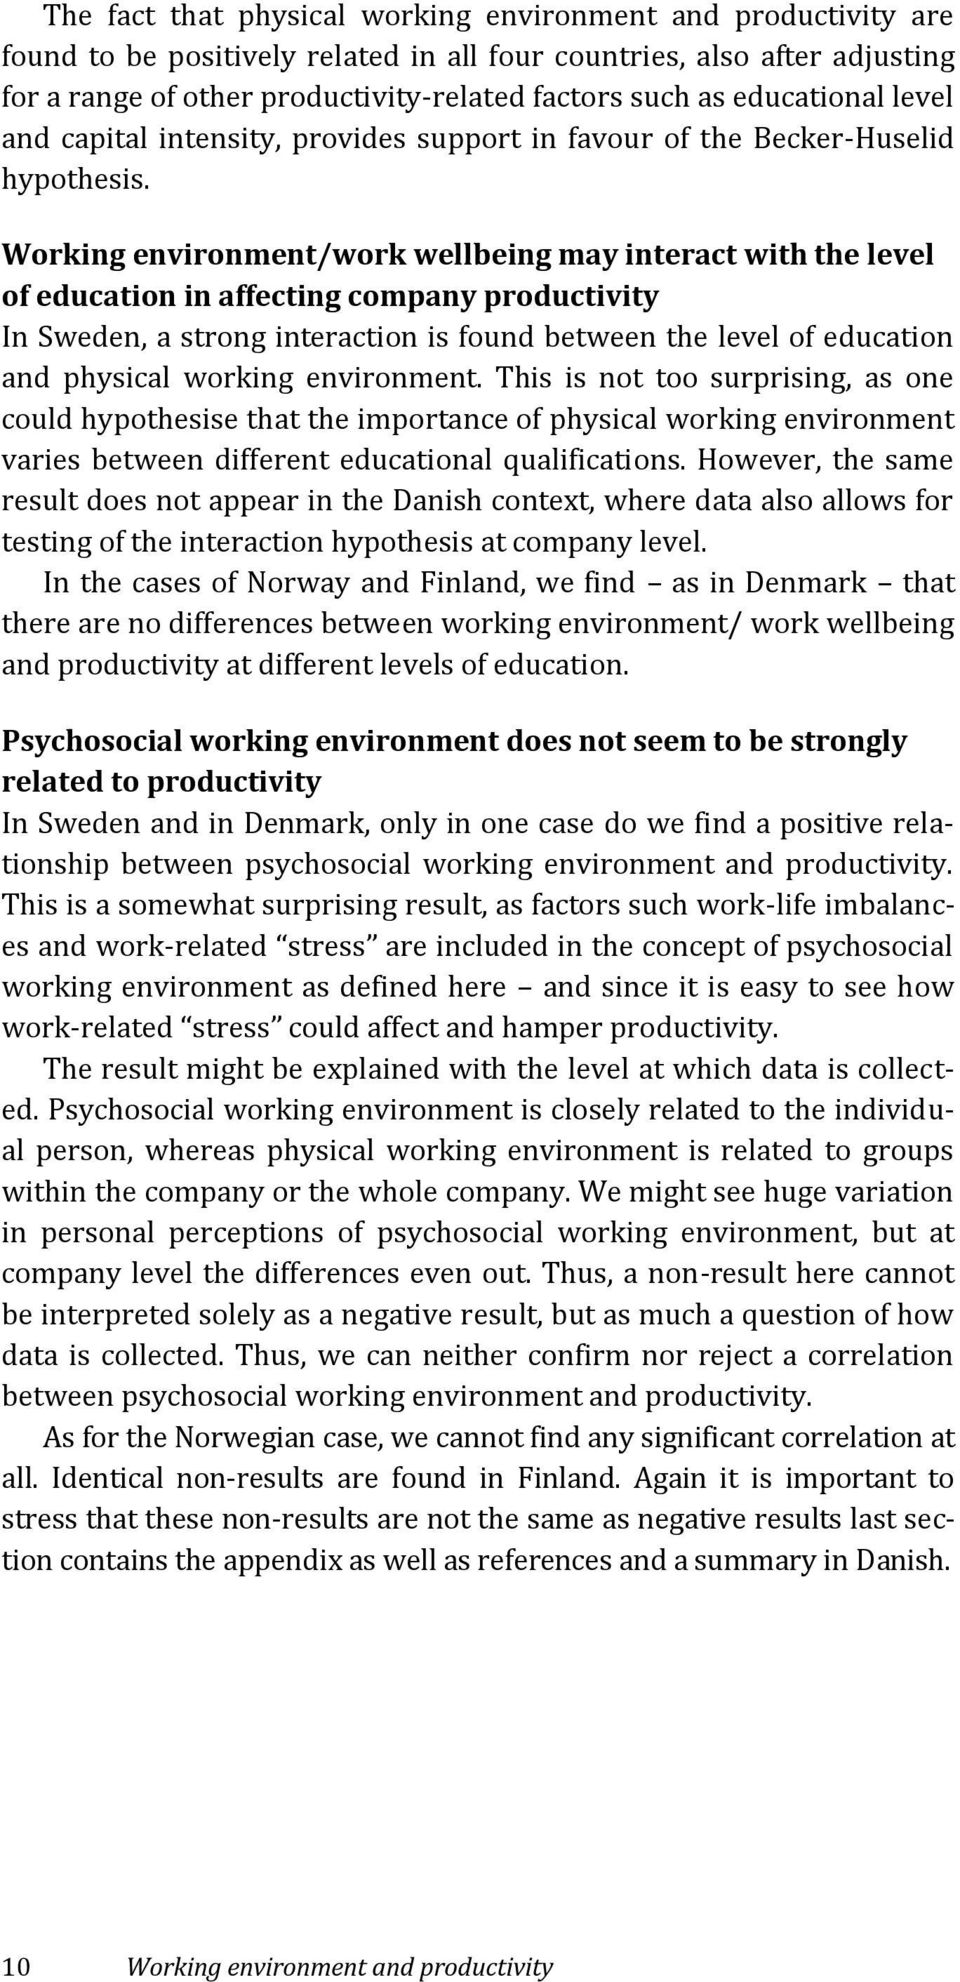 Working environment/work wellbeing may interact with the level of education in affecting company productivity In Sweden, a strong interaction is found between the level of education and physical